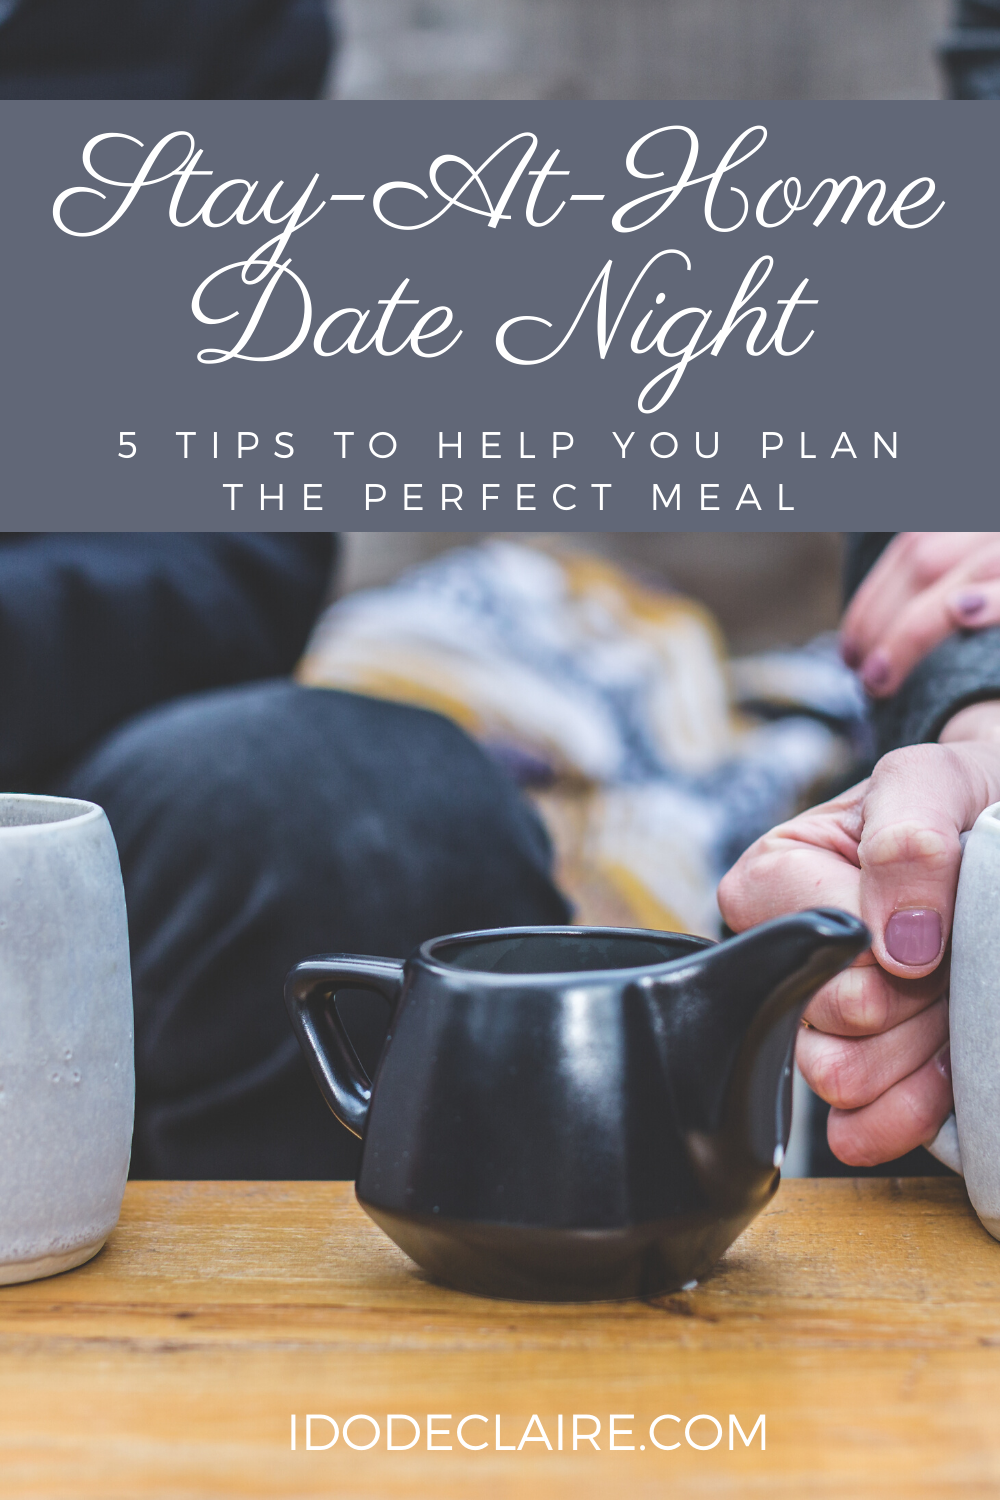 Stay-At-Home Date Night: 5 Tips to Help You Plan the Perfect Meal